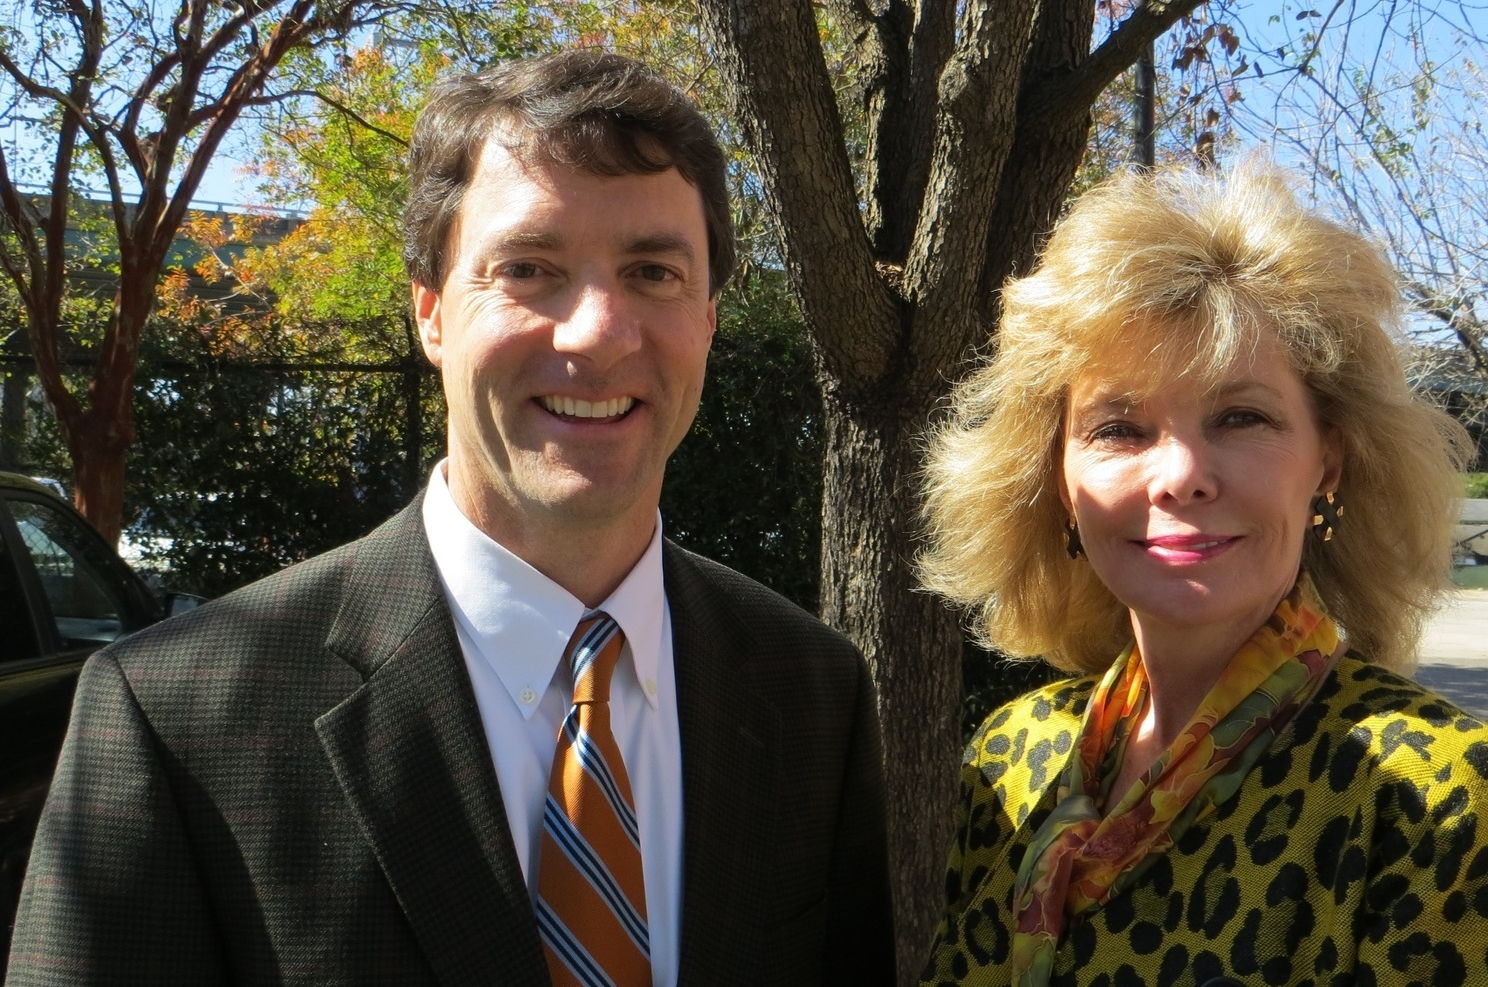 Harry Lesesne and Darla Moore